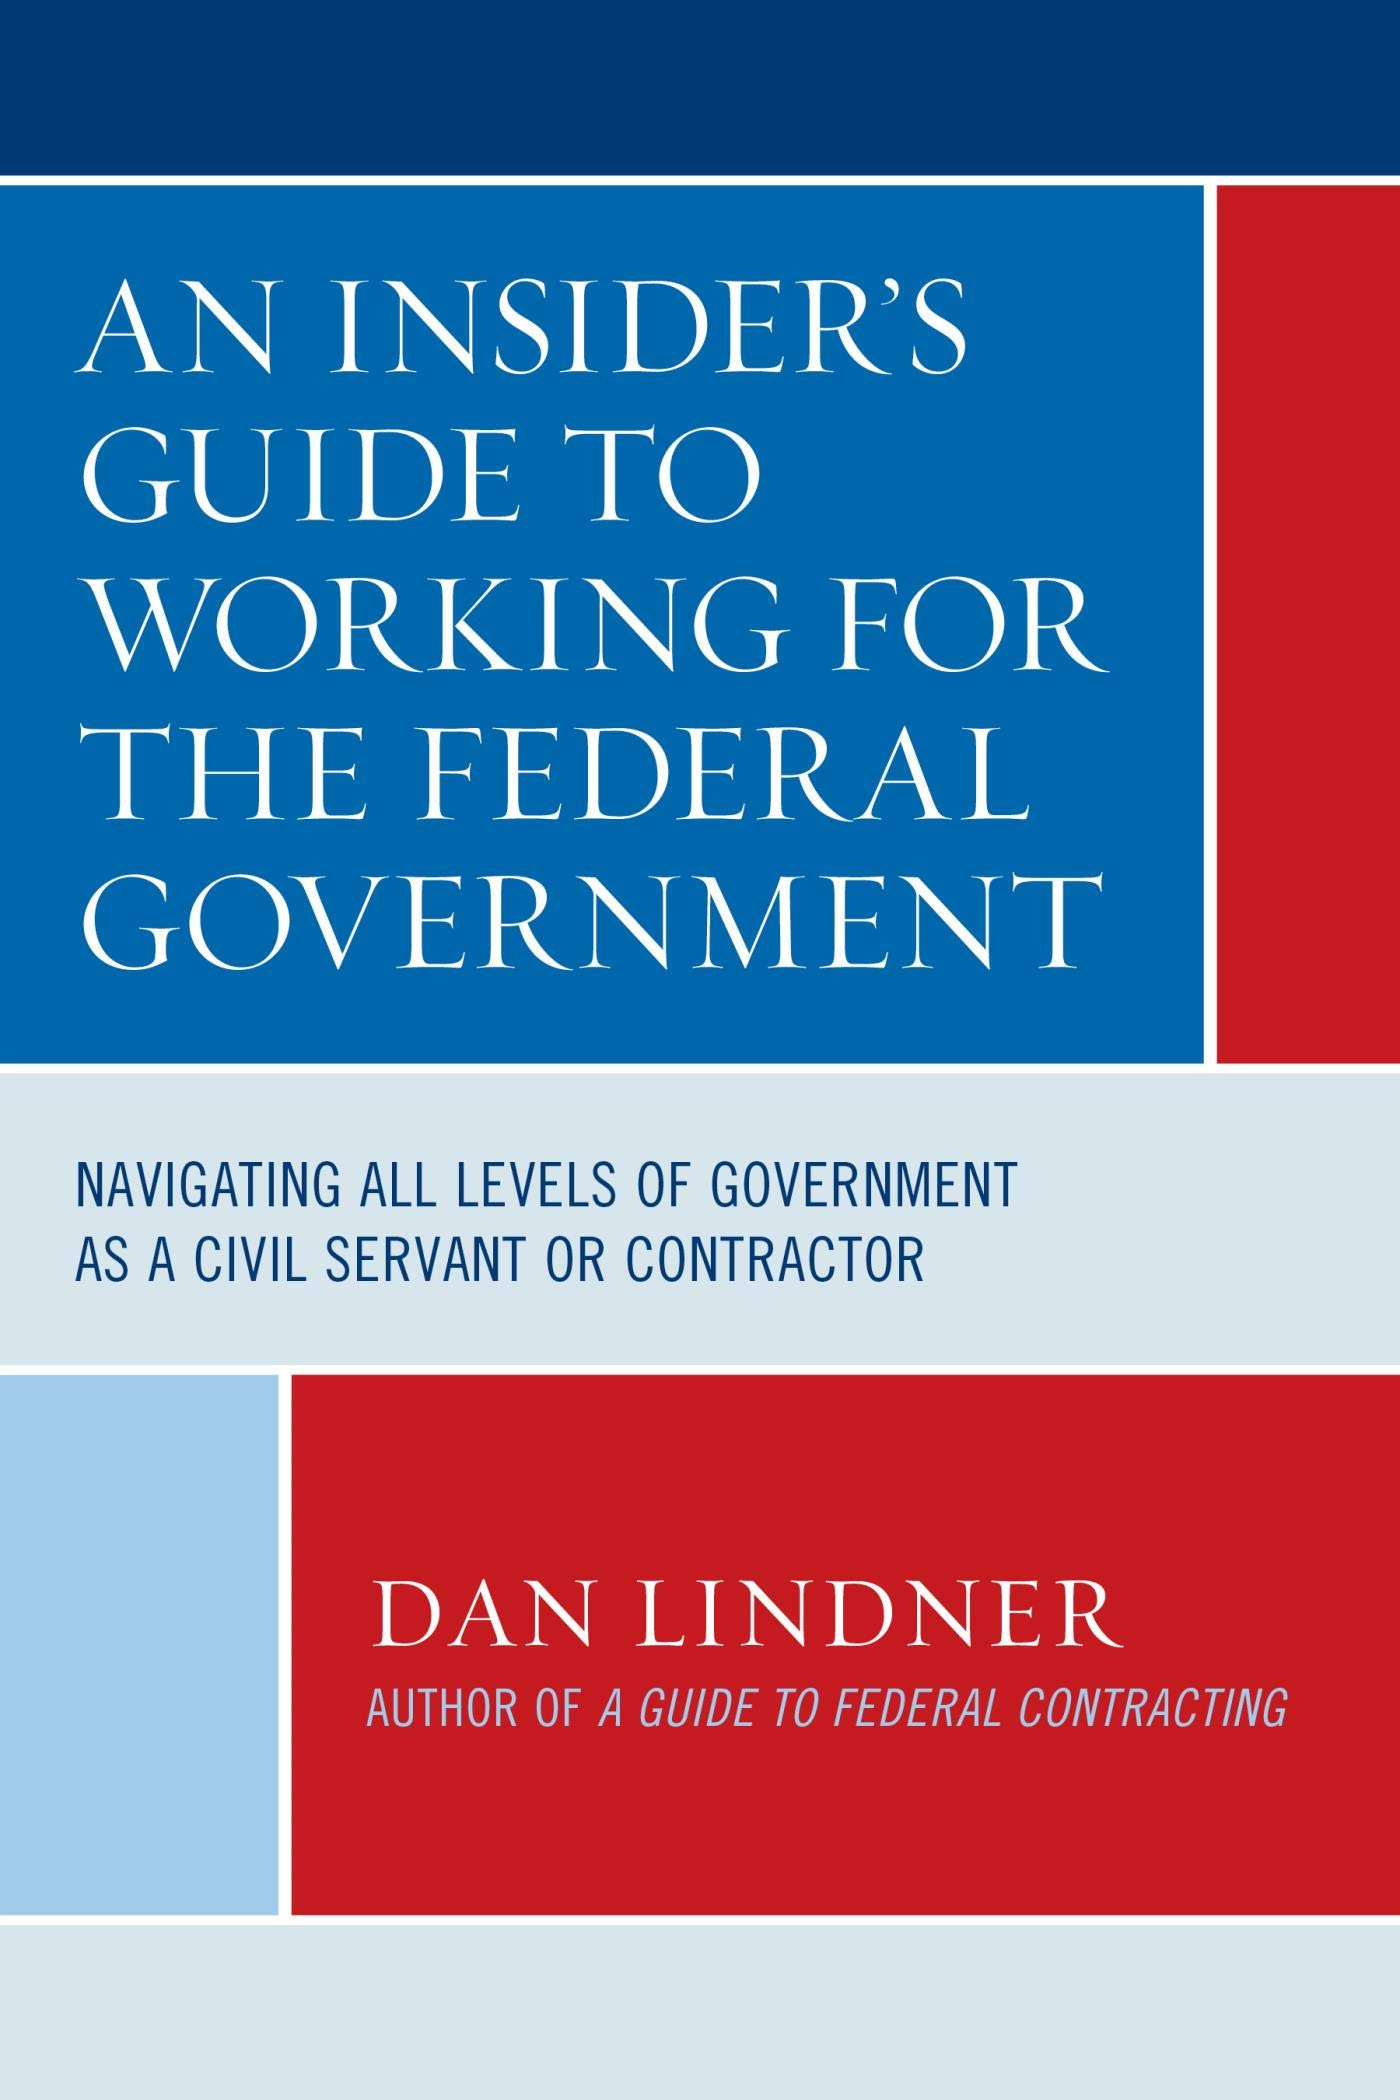 An Insider's Guide To Working for the Federal Government: Navigating All Levels of Government as a Civil Servant or Contractor